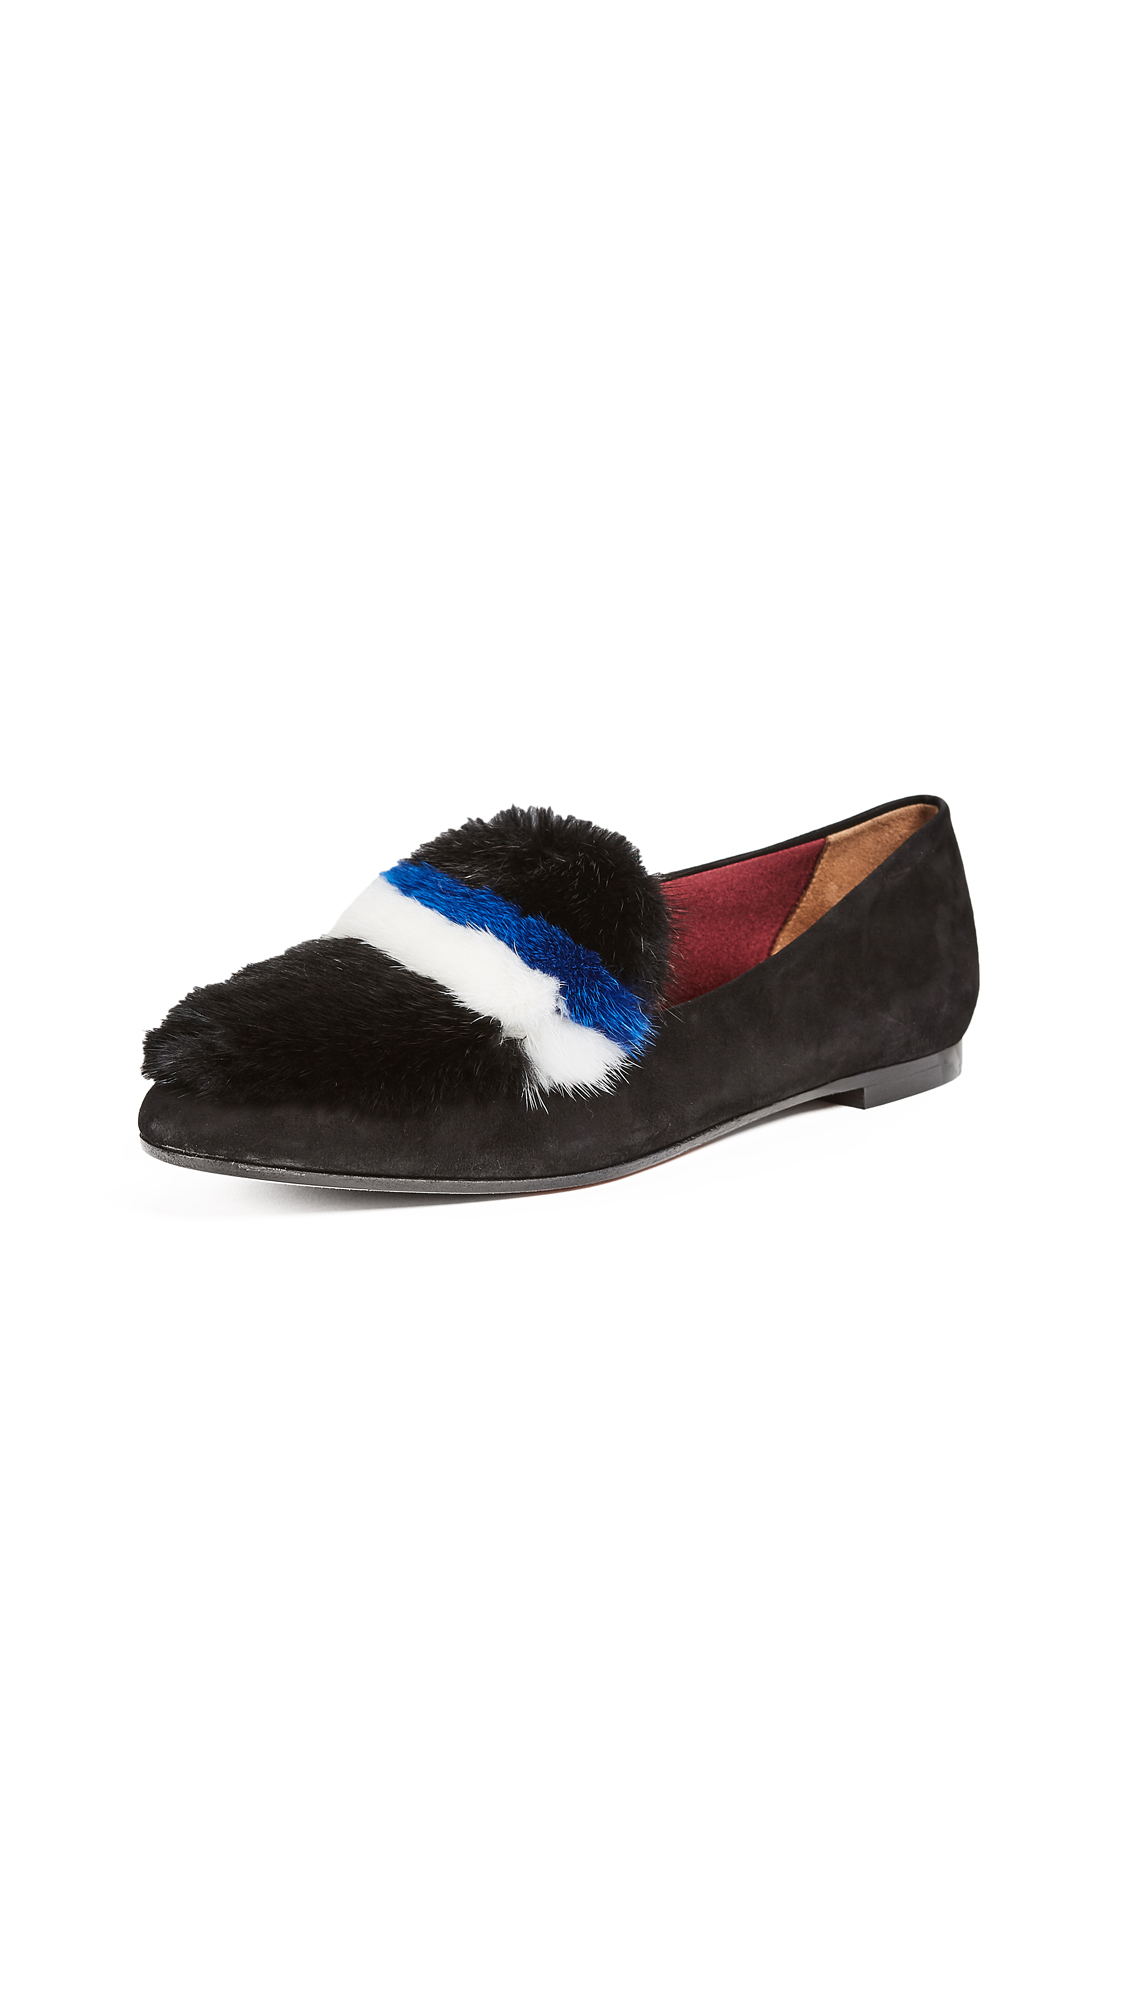 Aquazzura Purr Loafers - Black